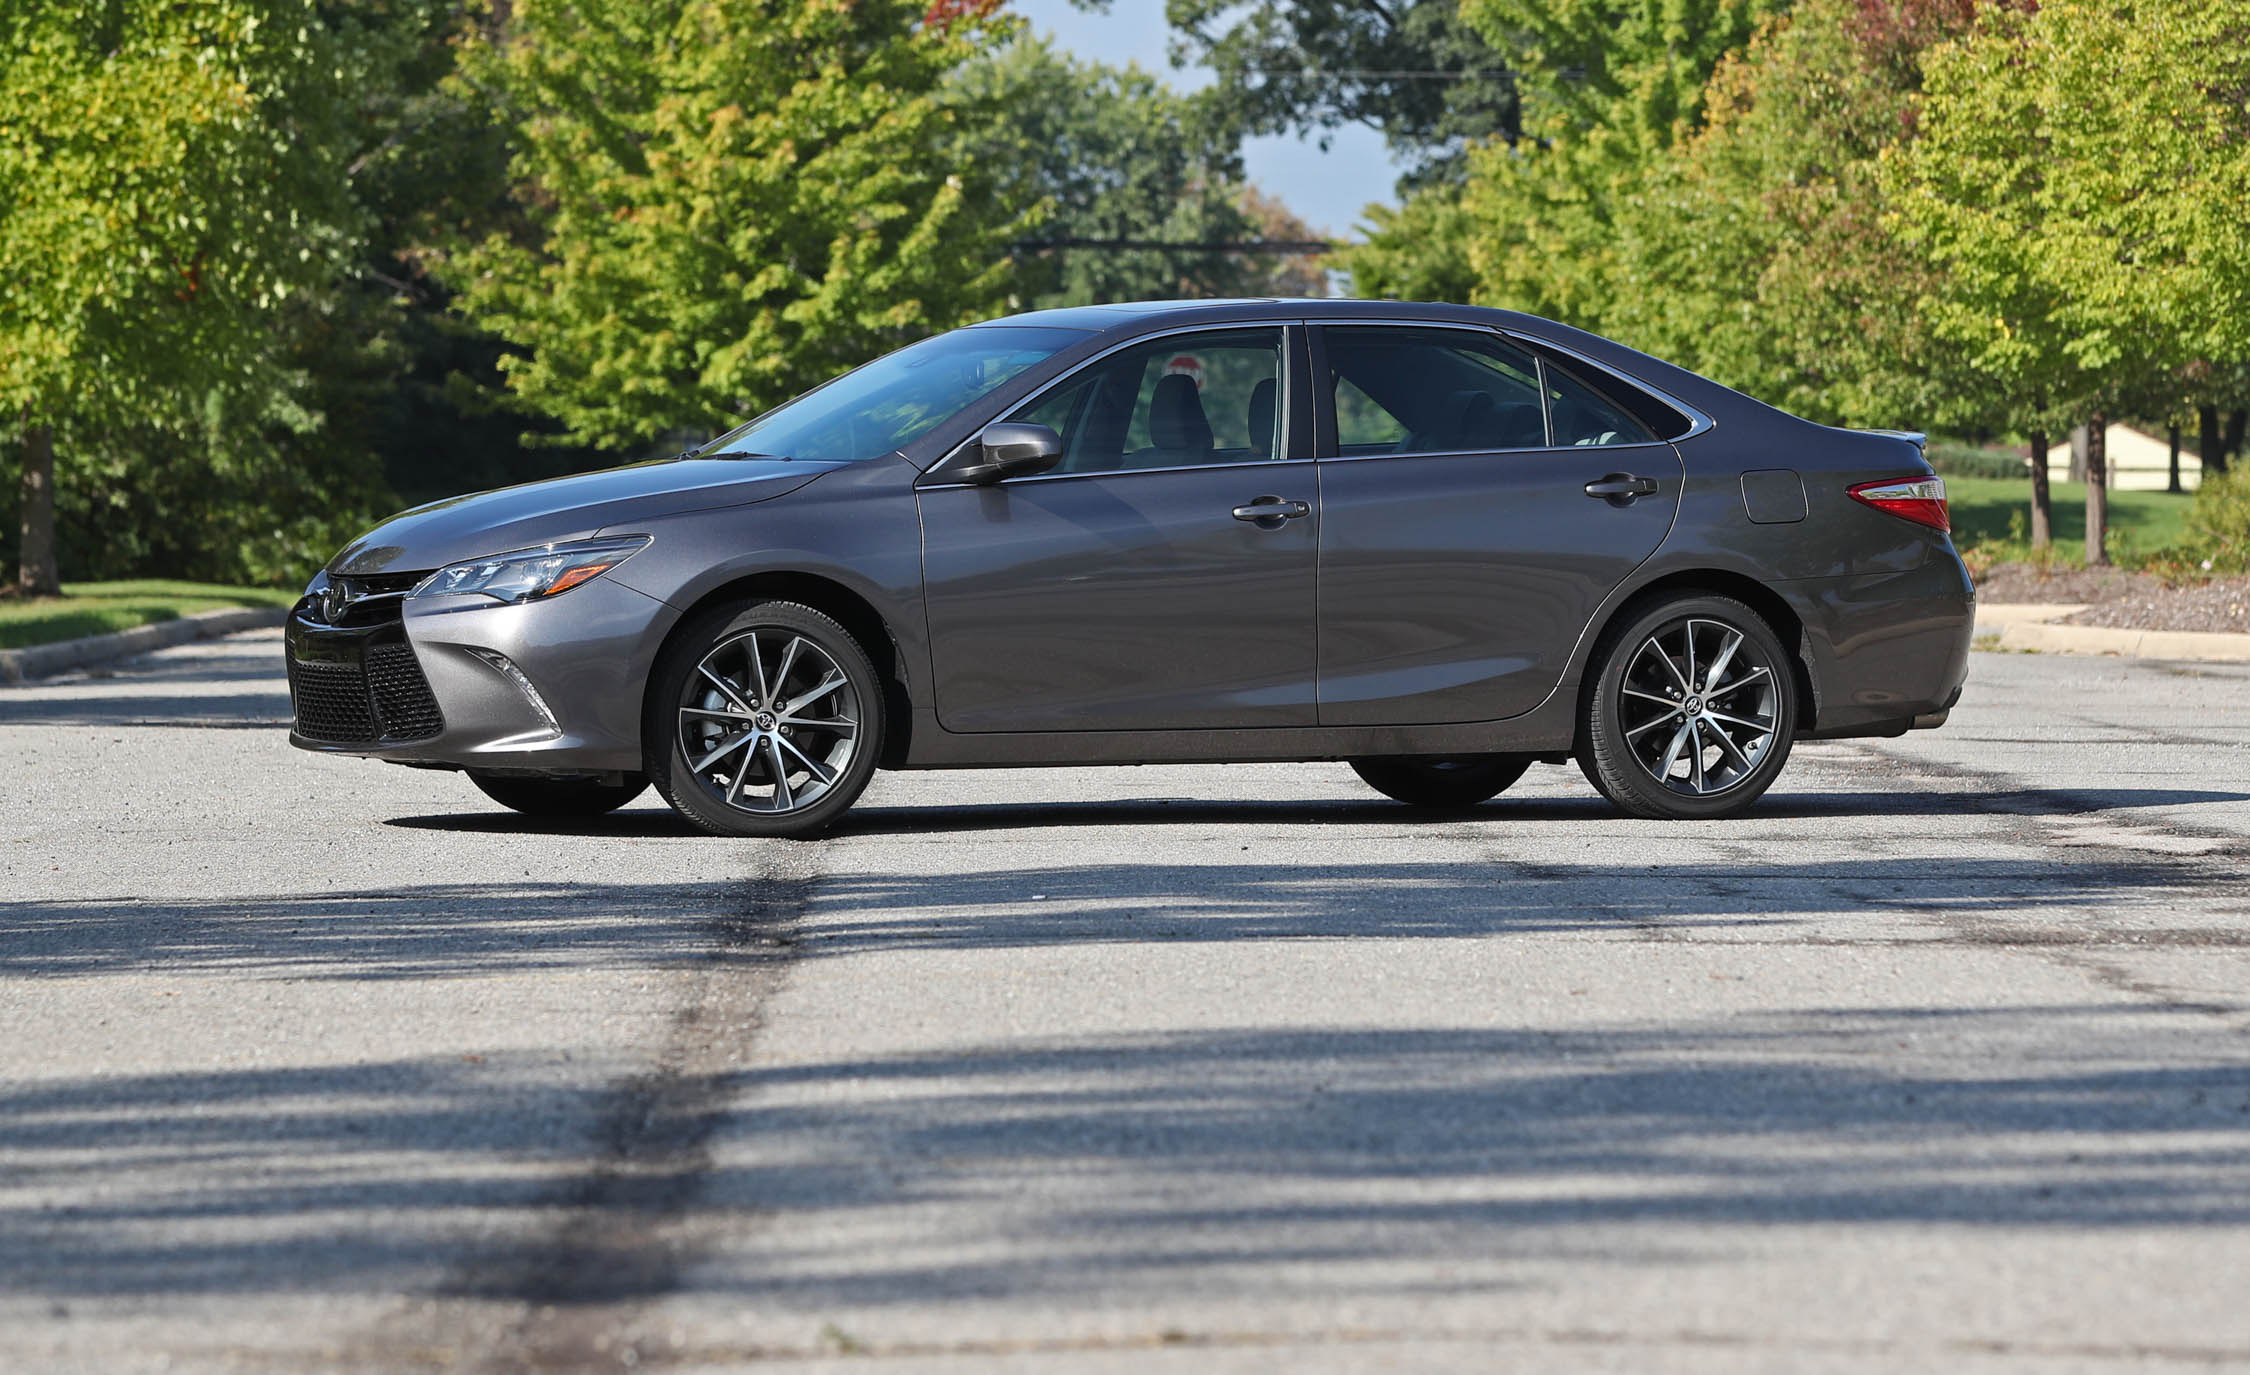 2017 Toyota Camry Exterior Grey Metallic (Photo 5 of 37)